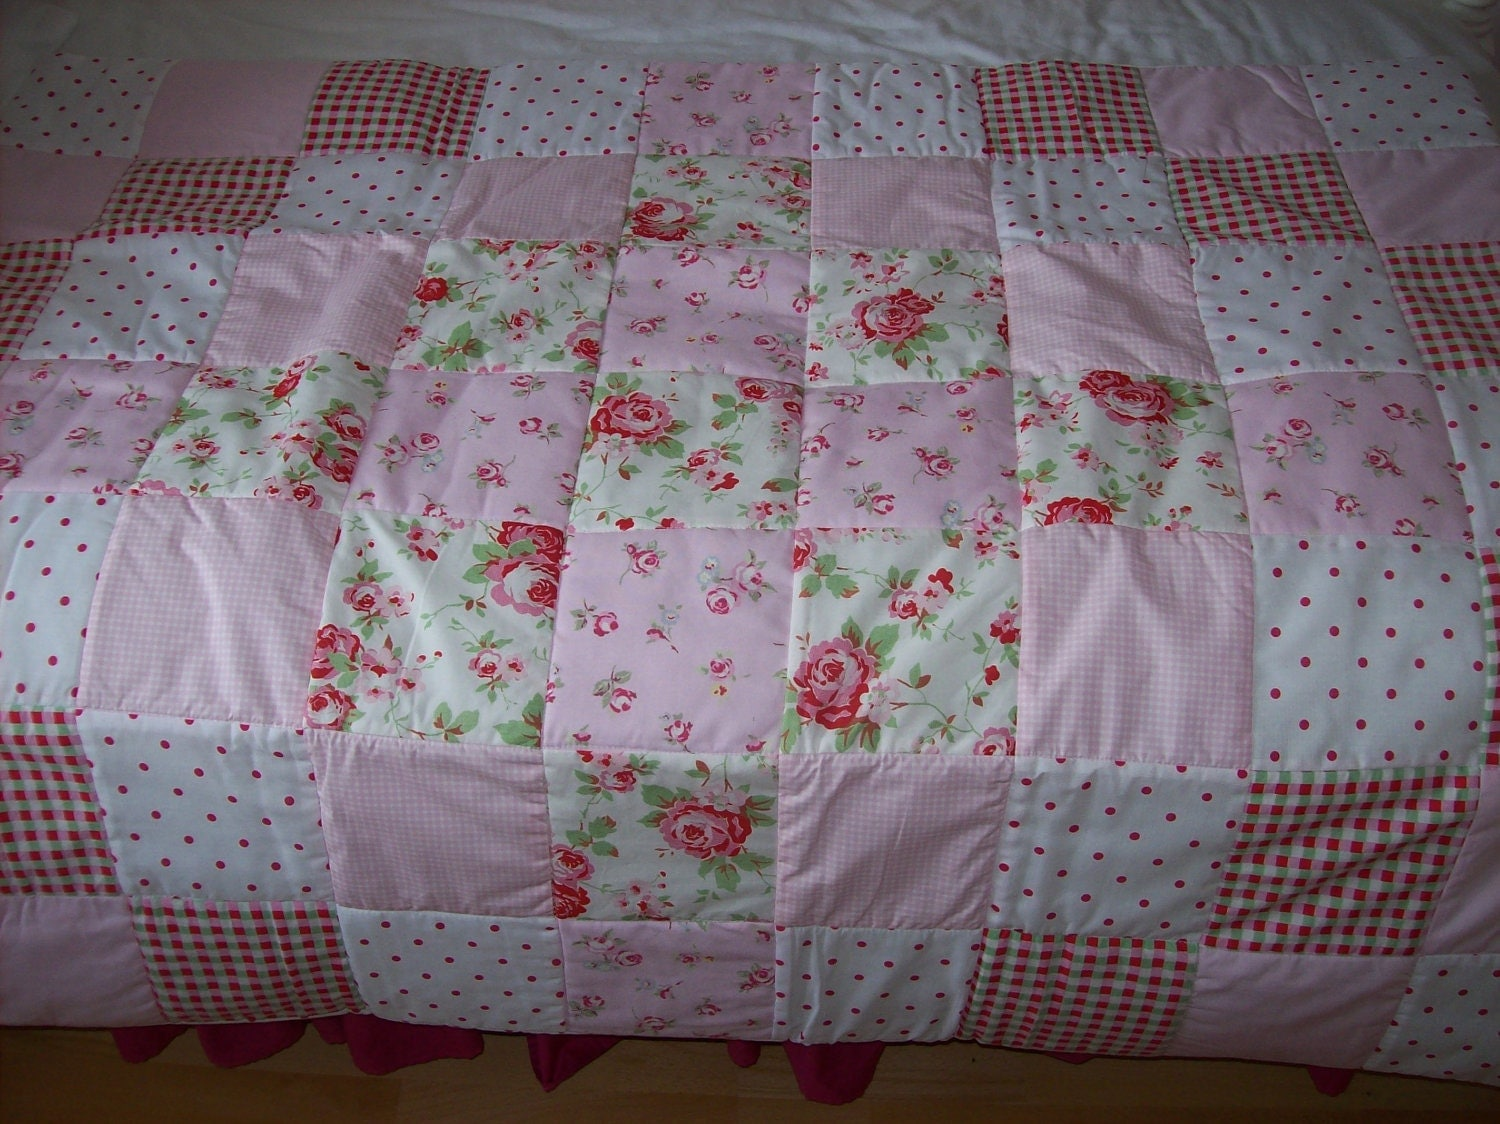 Cath Kidston Shabby Chic Patchwork Cot Or Bed Quilt Eiderdown